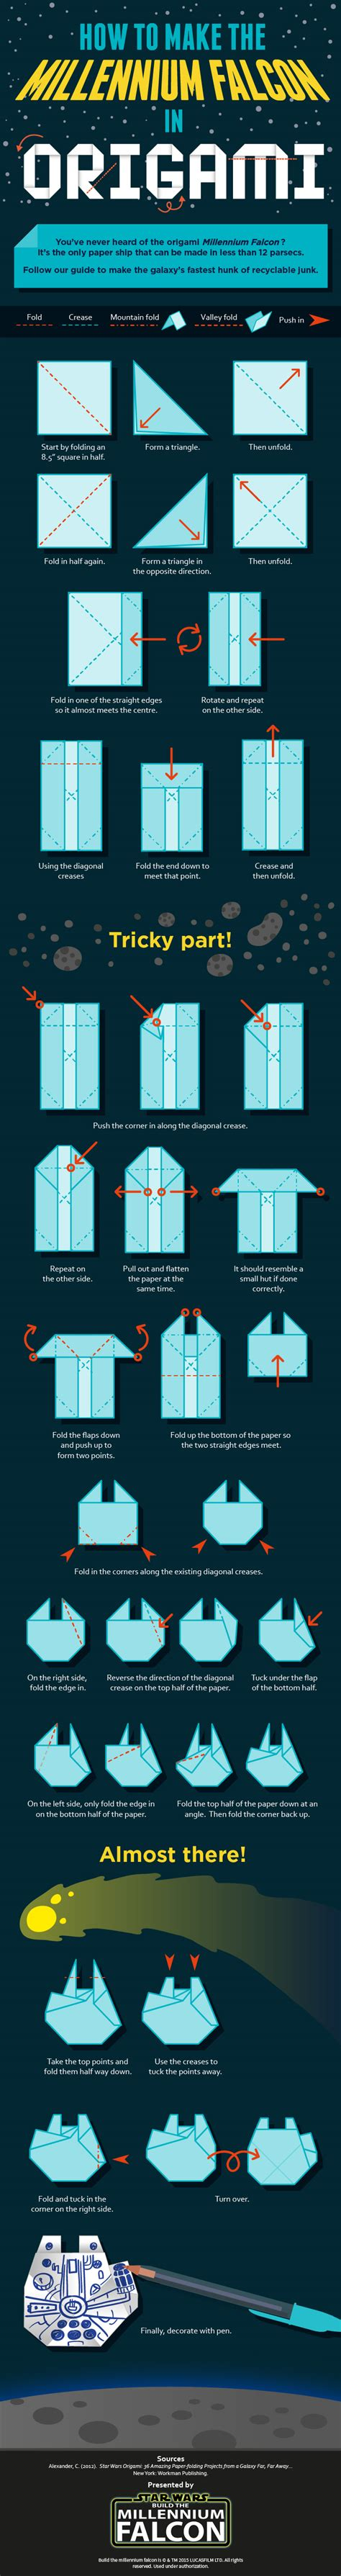 Millennium Falcon Origami - how to make the millennium falcon in origami infographic